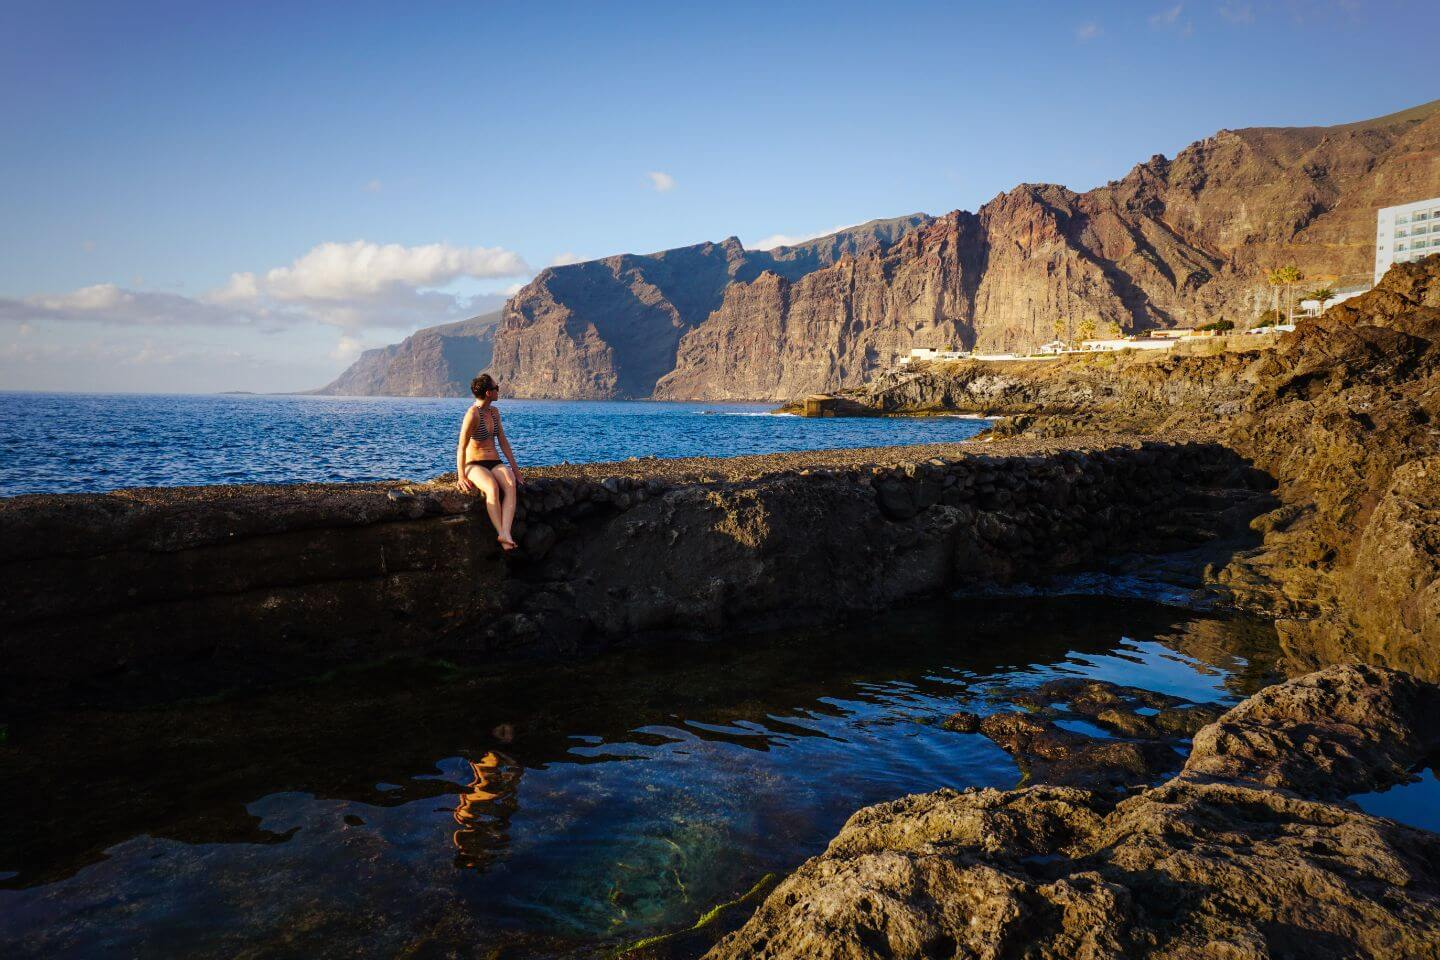 Los Gigantes, Where to Stay in Tenerife for Hiking - Canary Islands, Spain